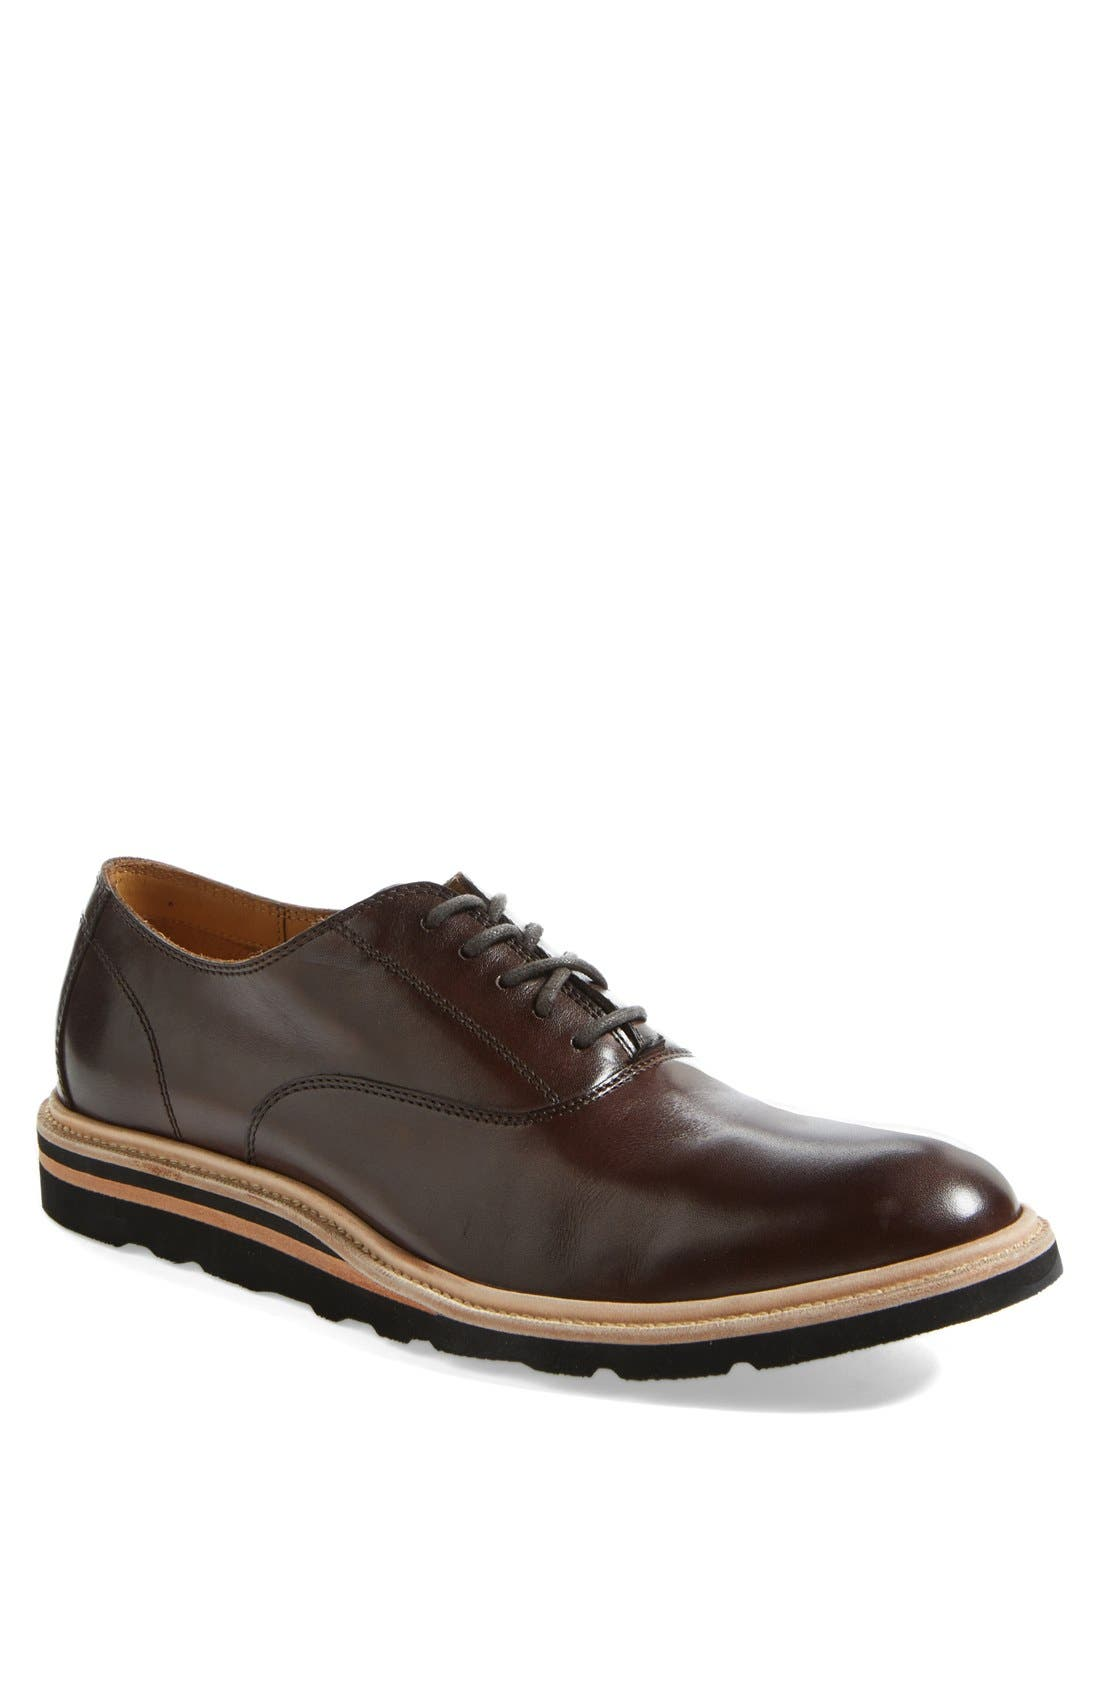 Alternate Image 1 Selected - Cole Haan 'Christy' Wedge Sole Oxford (Men)